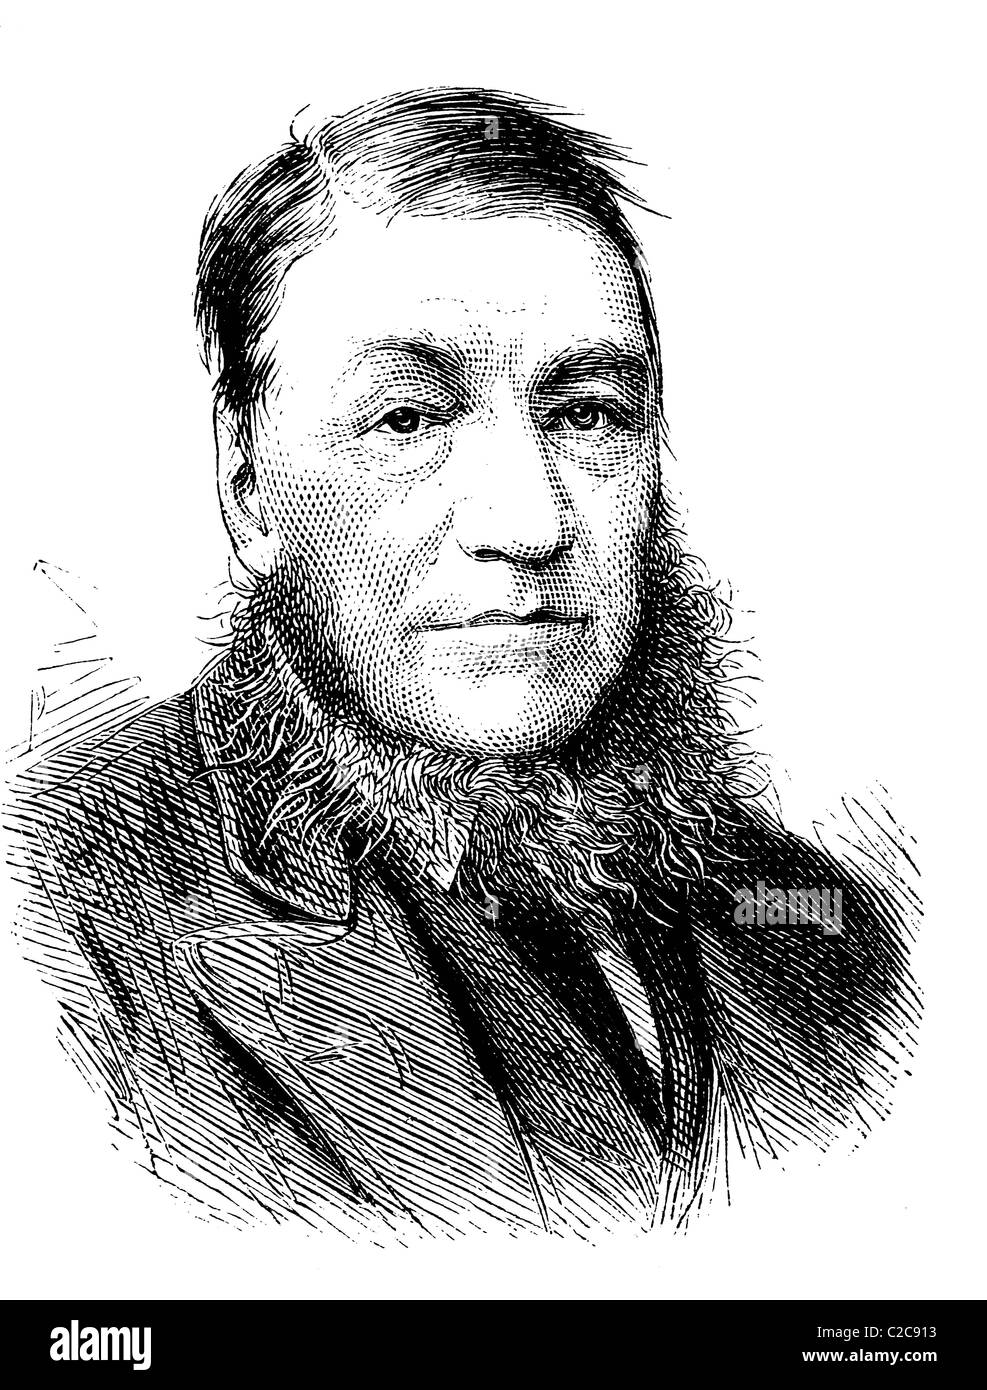 Paul Kruger, 1825-1904, President of the Transvaal Republic, historical illustration, circa 1886 - Stock Image